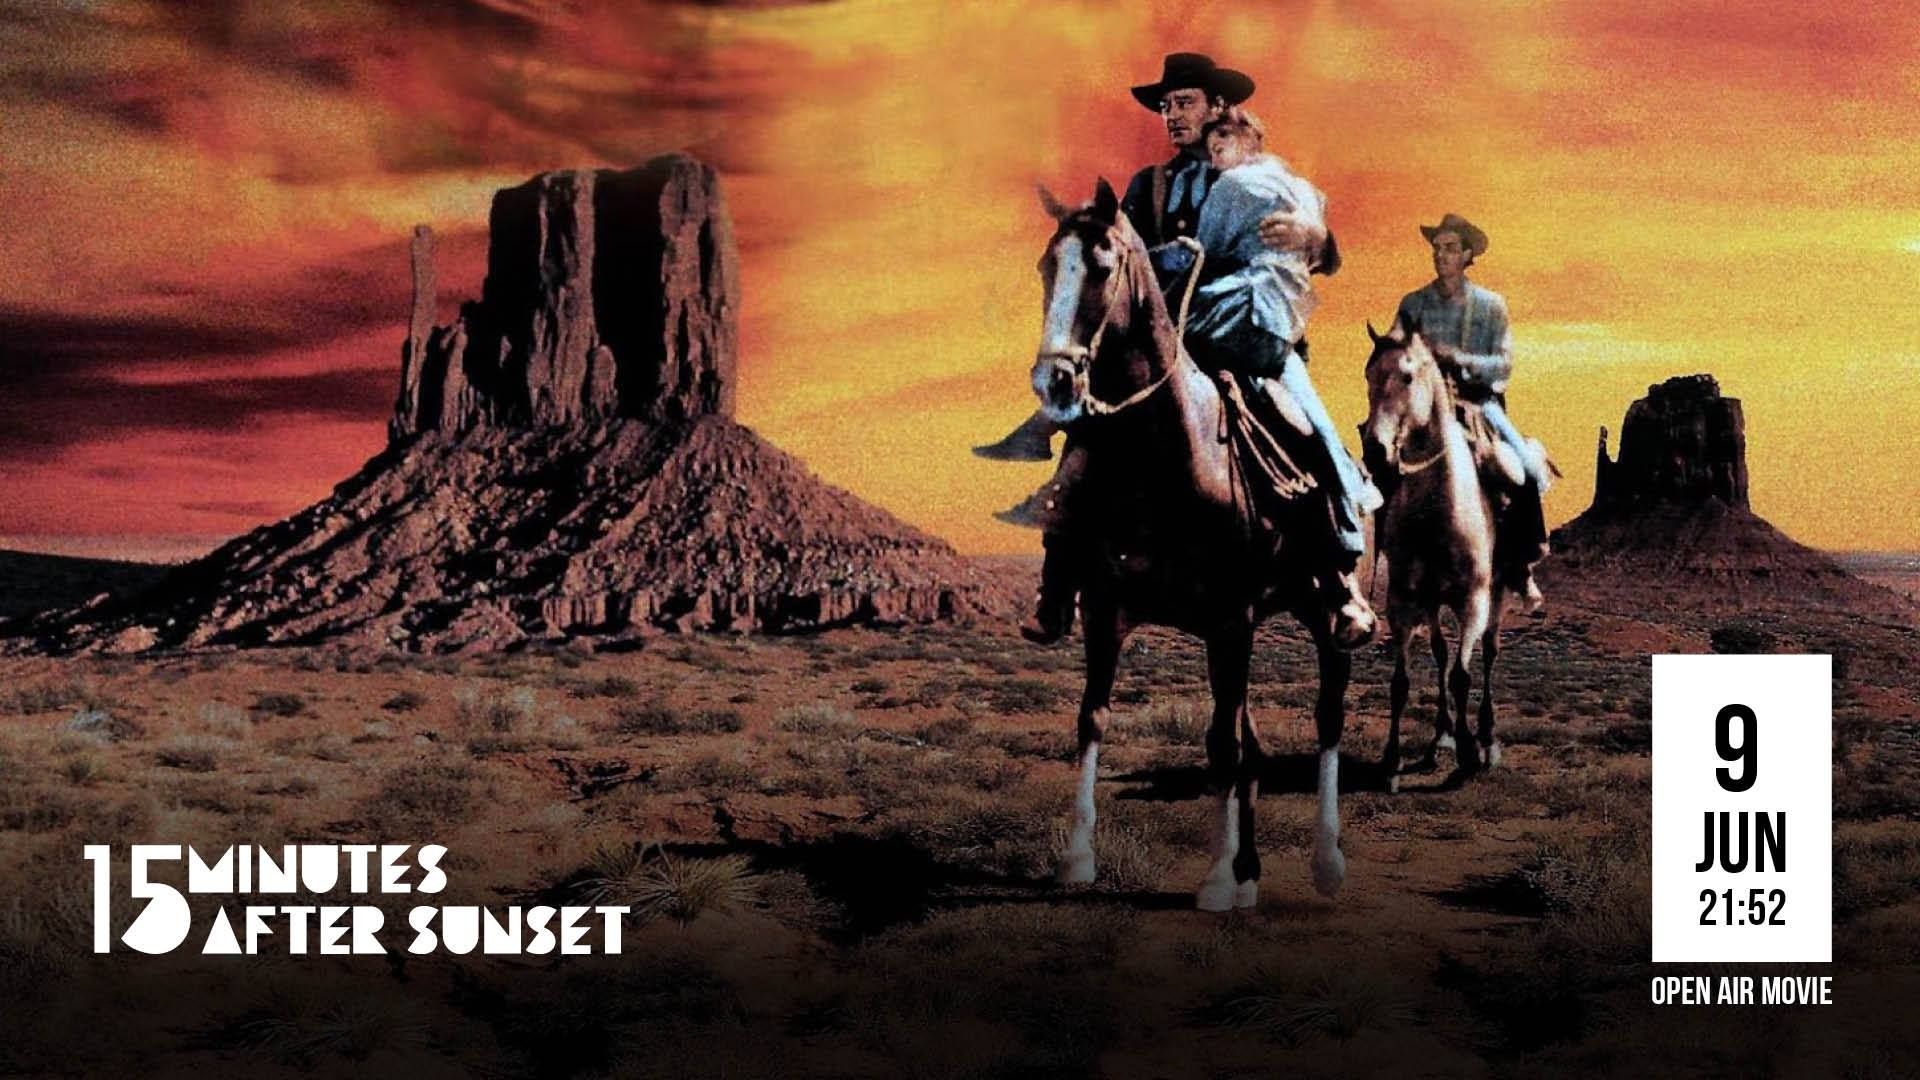 15 minutes after sunset - the Searchers